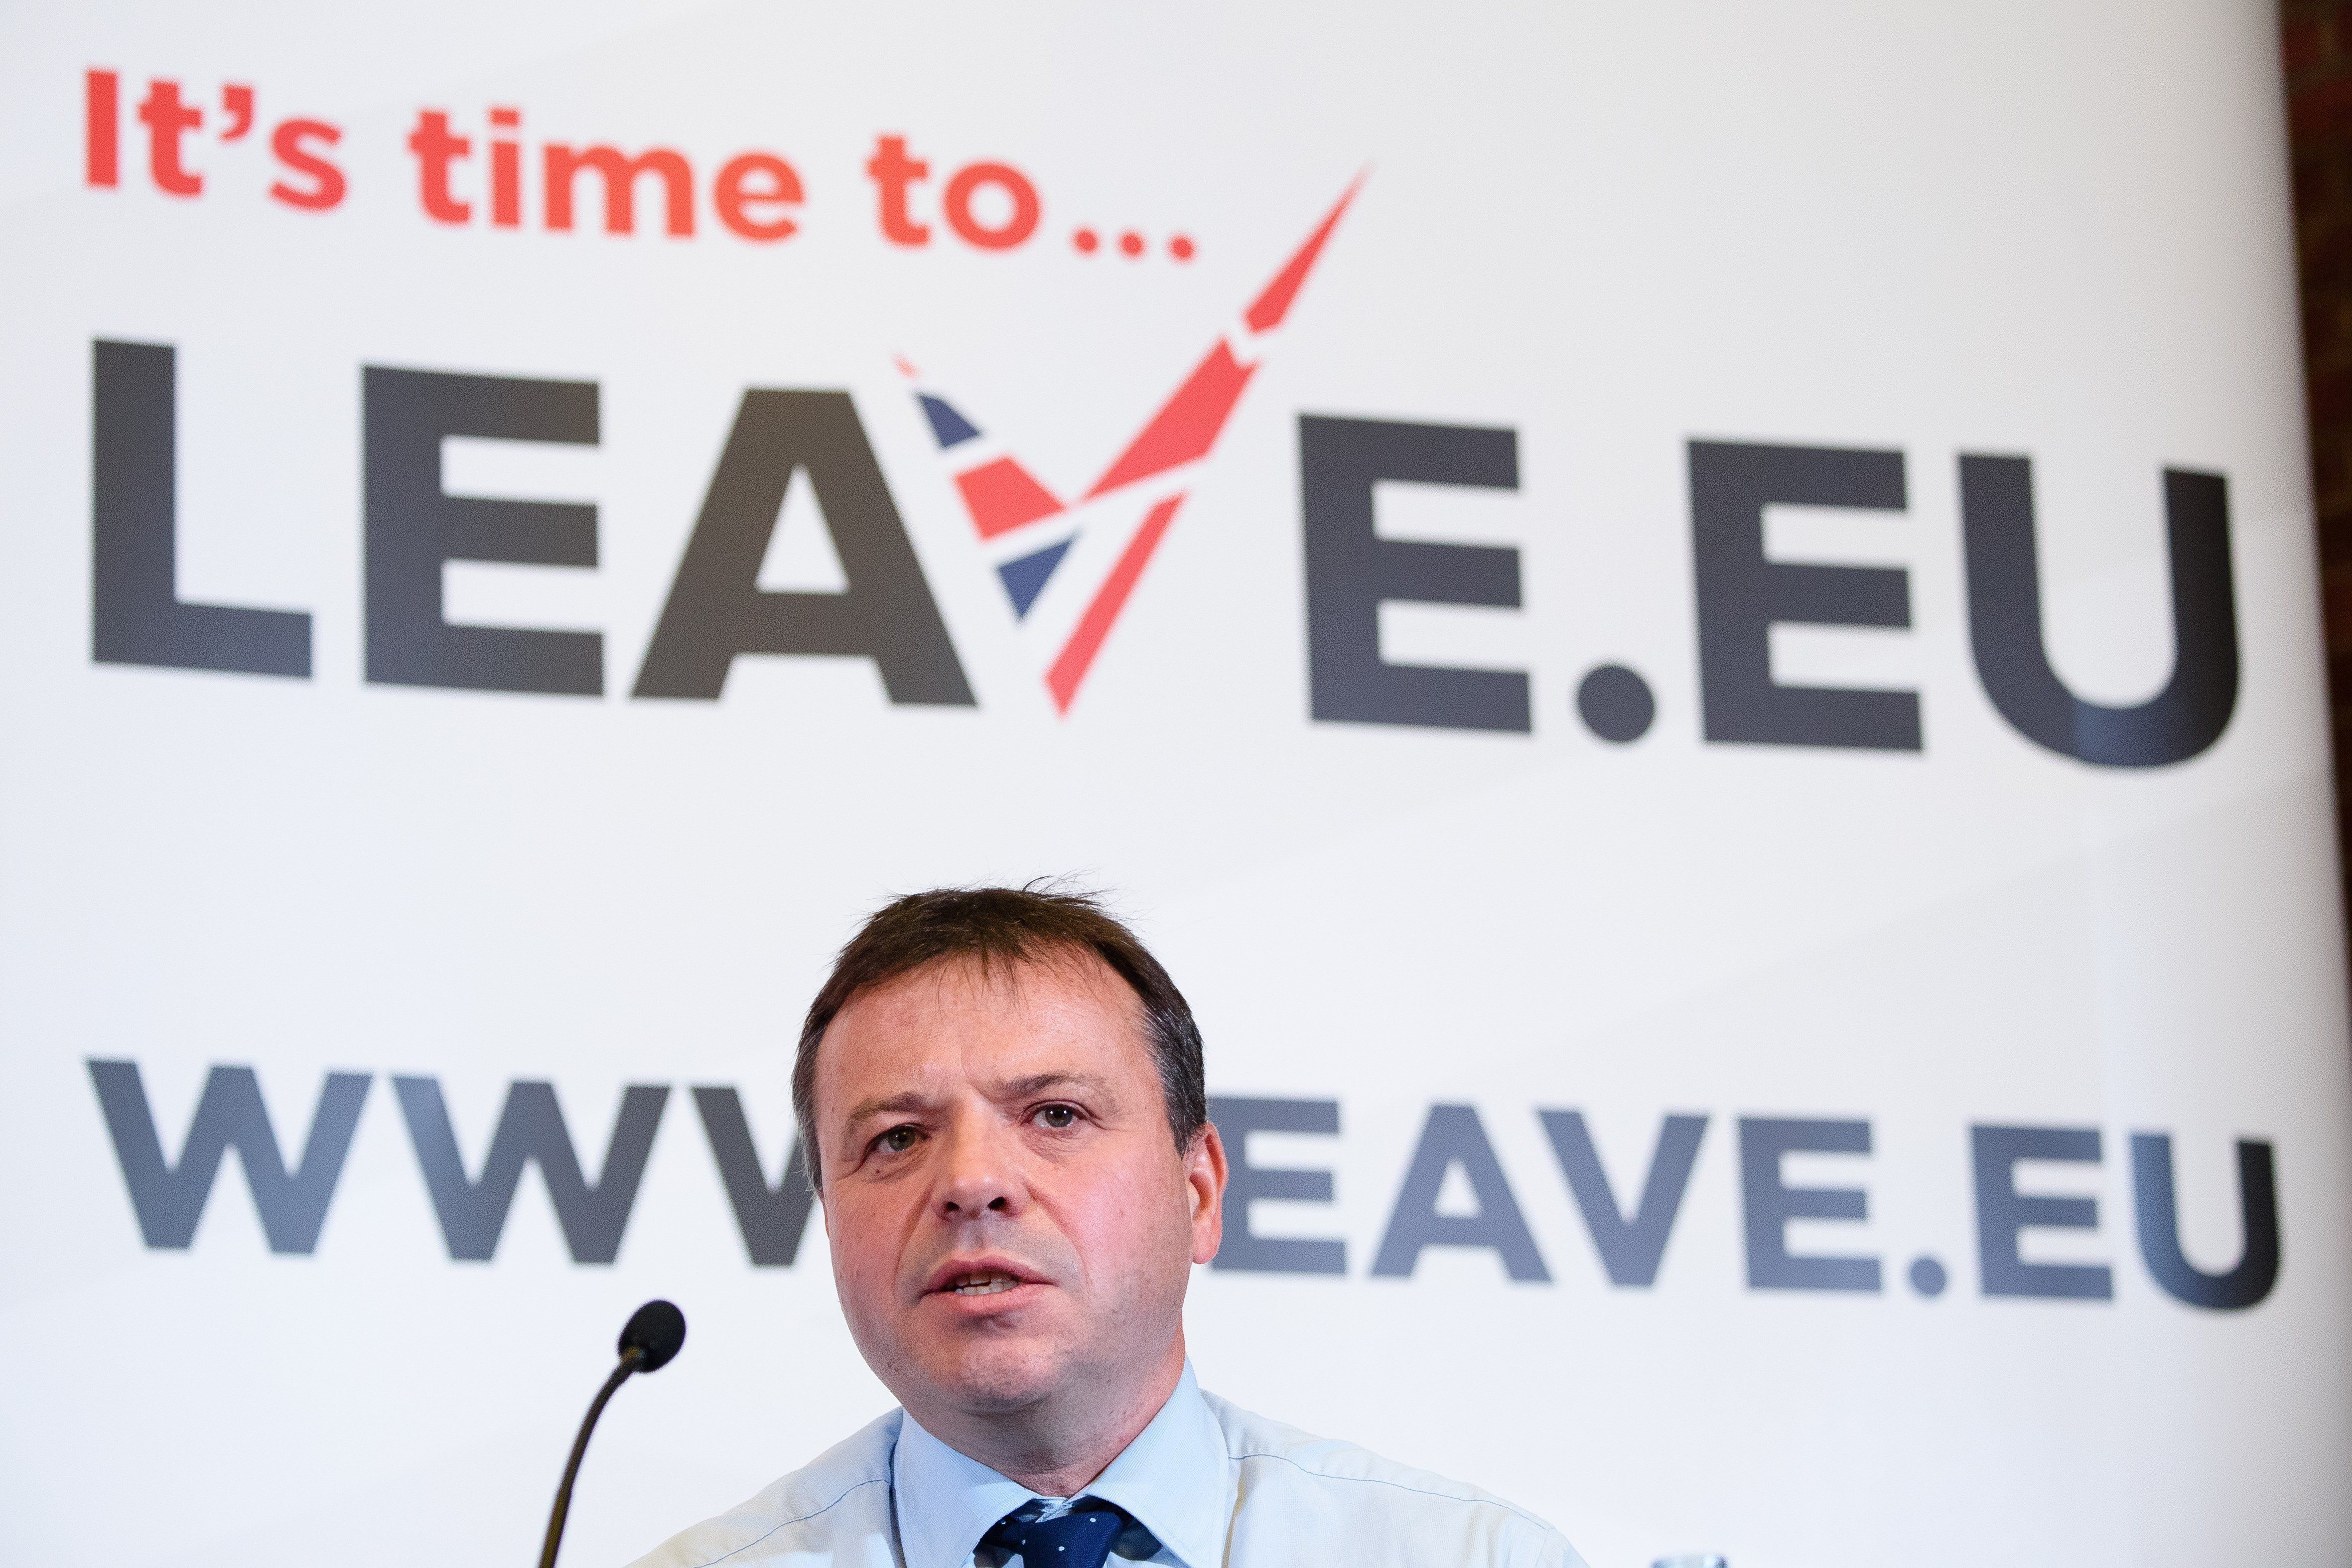 Leave.EU fined £70000 for breaking electoral laws during EU referendum